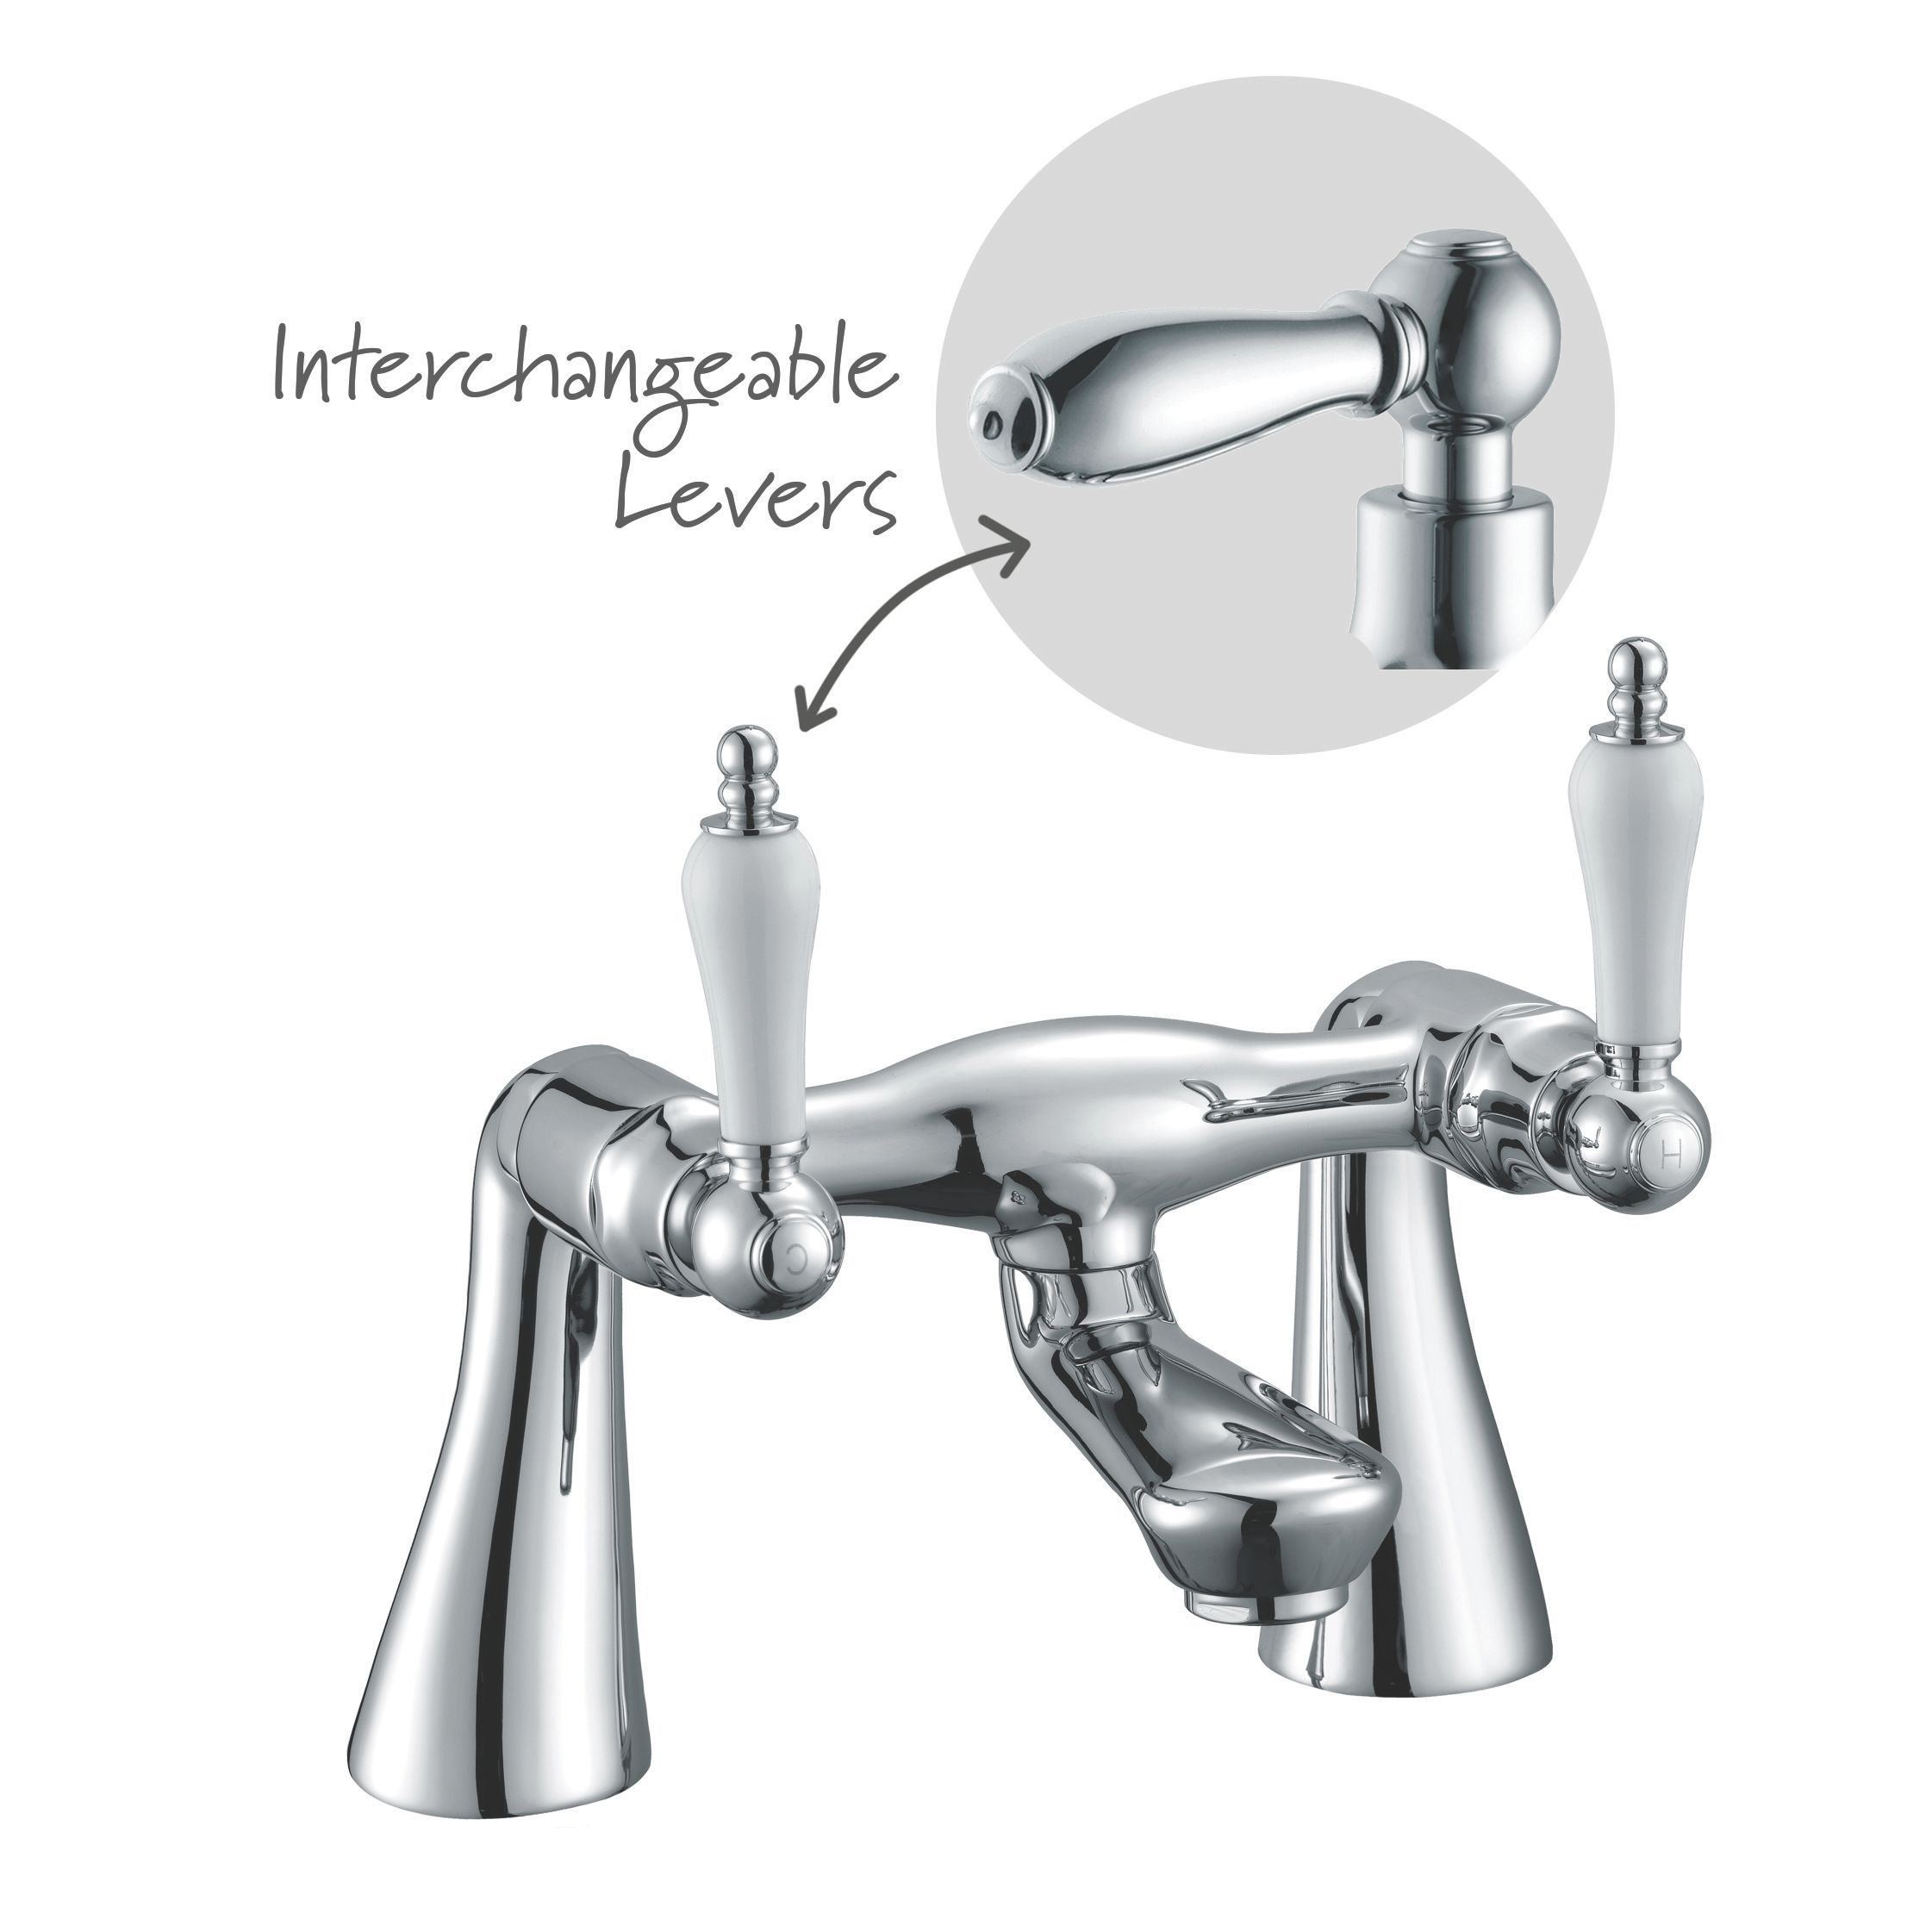 Cooke & Lewis Timeless Chrome Bath Mixer Tap | Departments ...